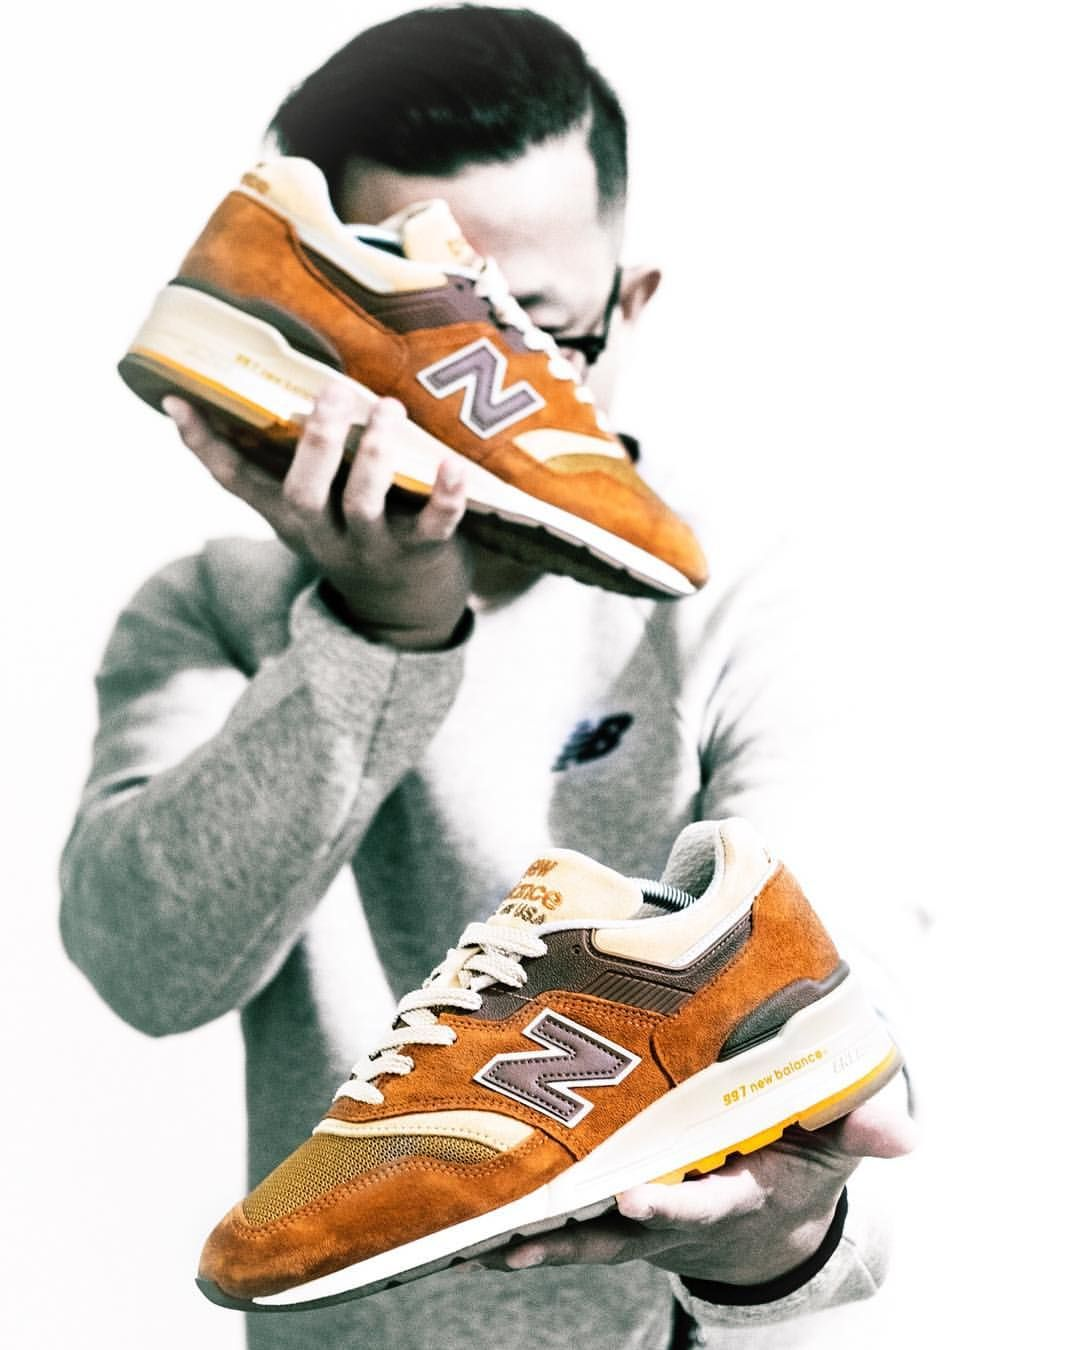 competitive price 6843e f105c J. Crew x New Balance 997 'Butterscotch' | Sneakers: New ...